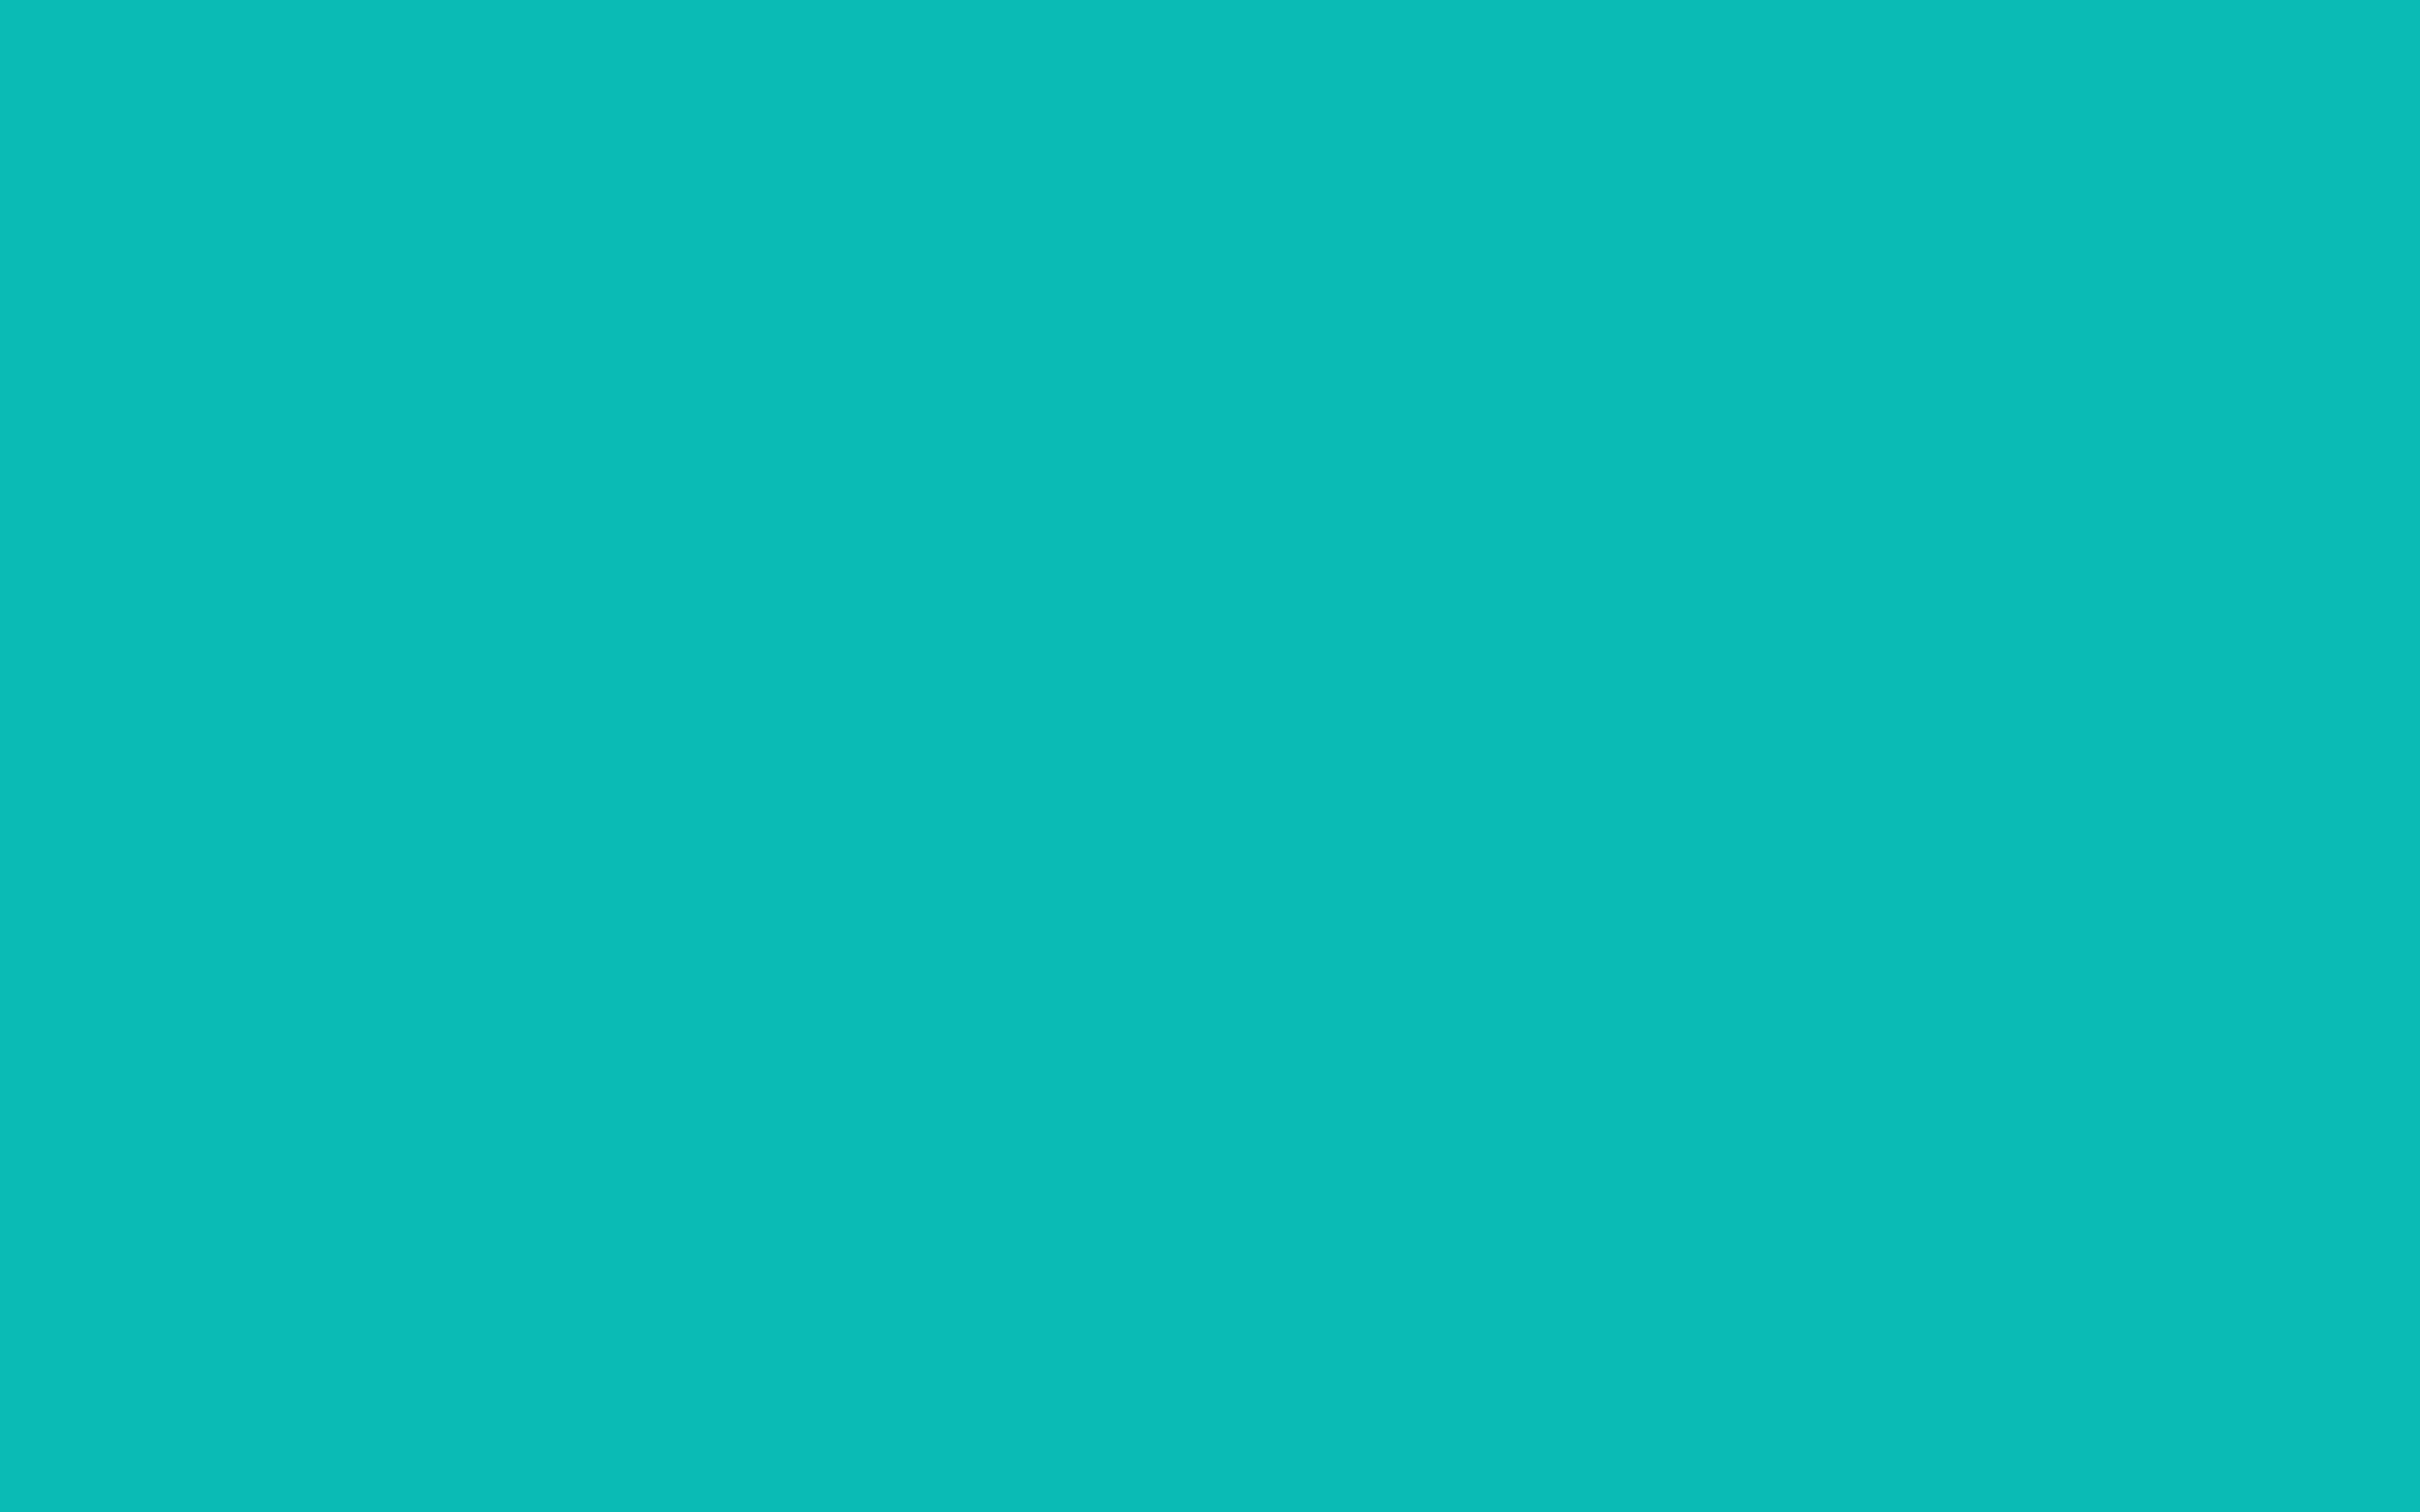 2560x1600 tiffany blue solid color background